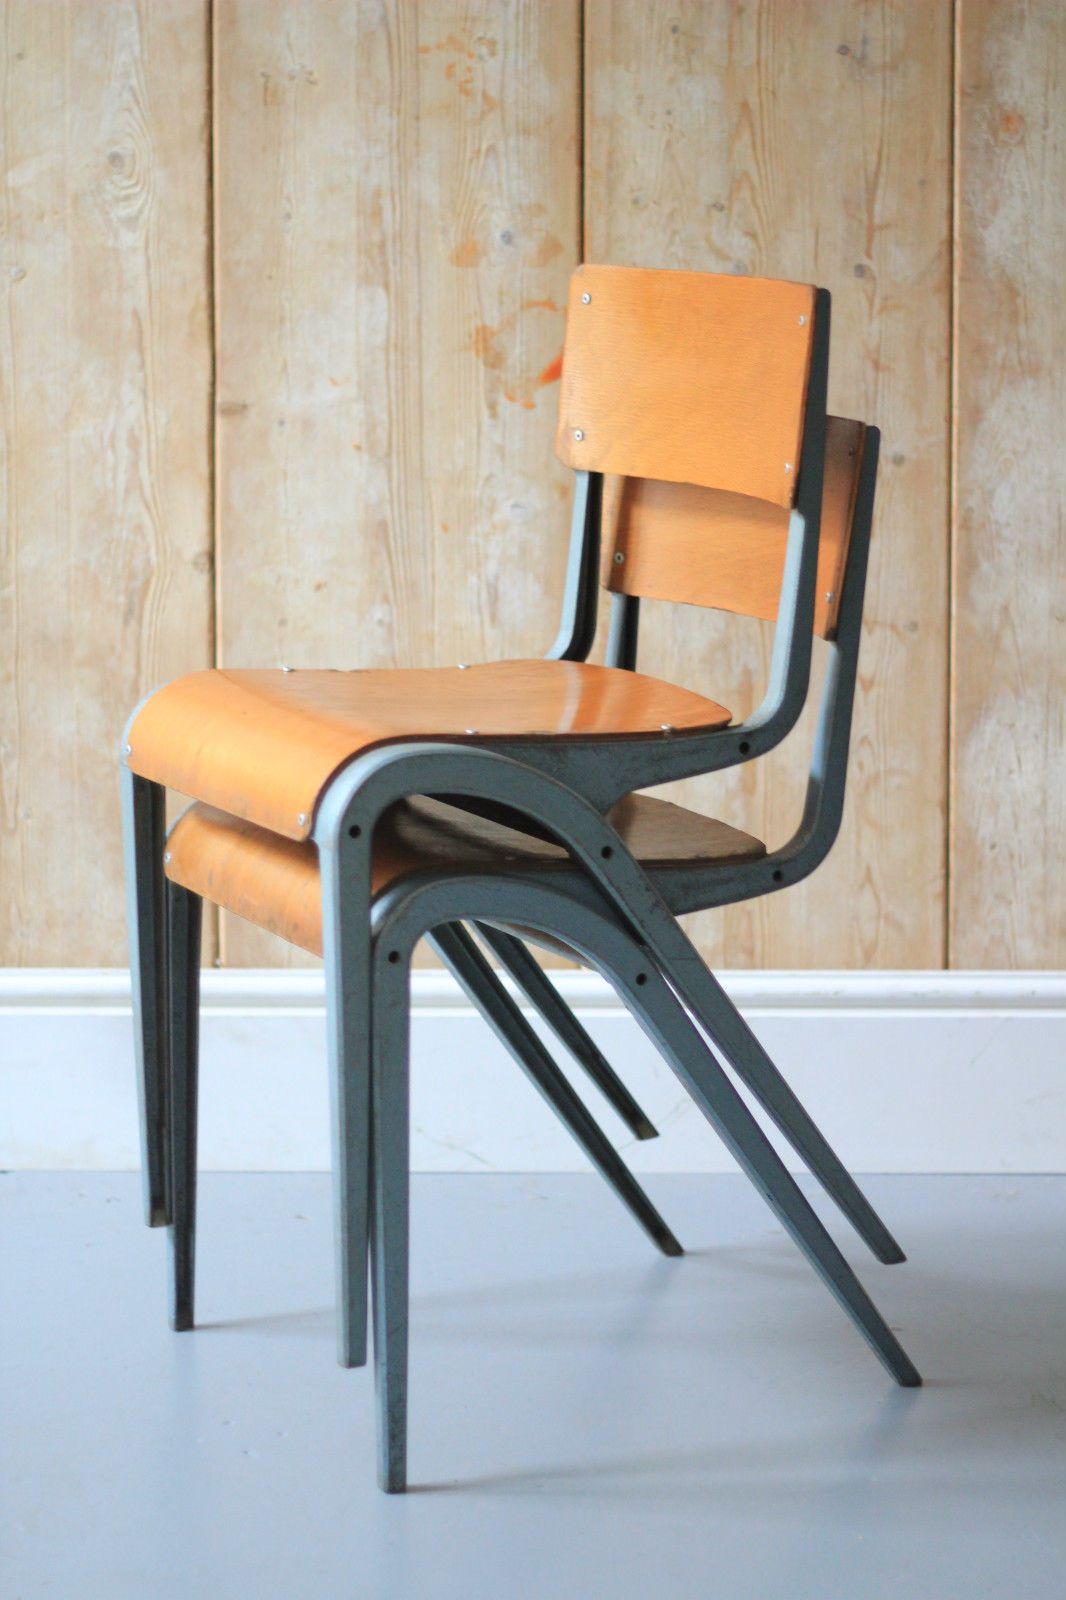 Esavian Vintage Industrial Mid Century Stacking School Chairs X2